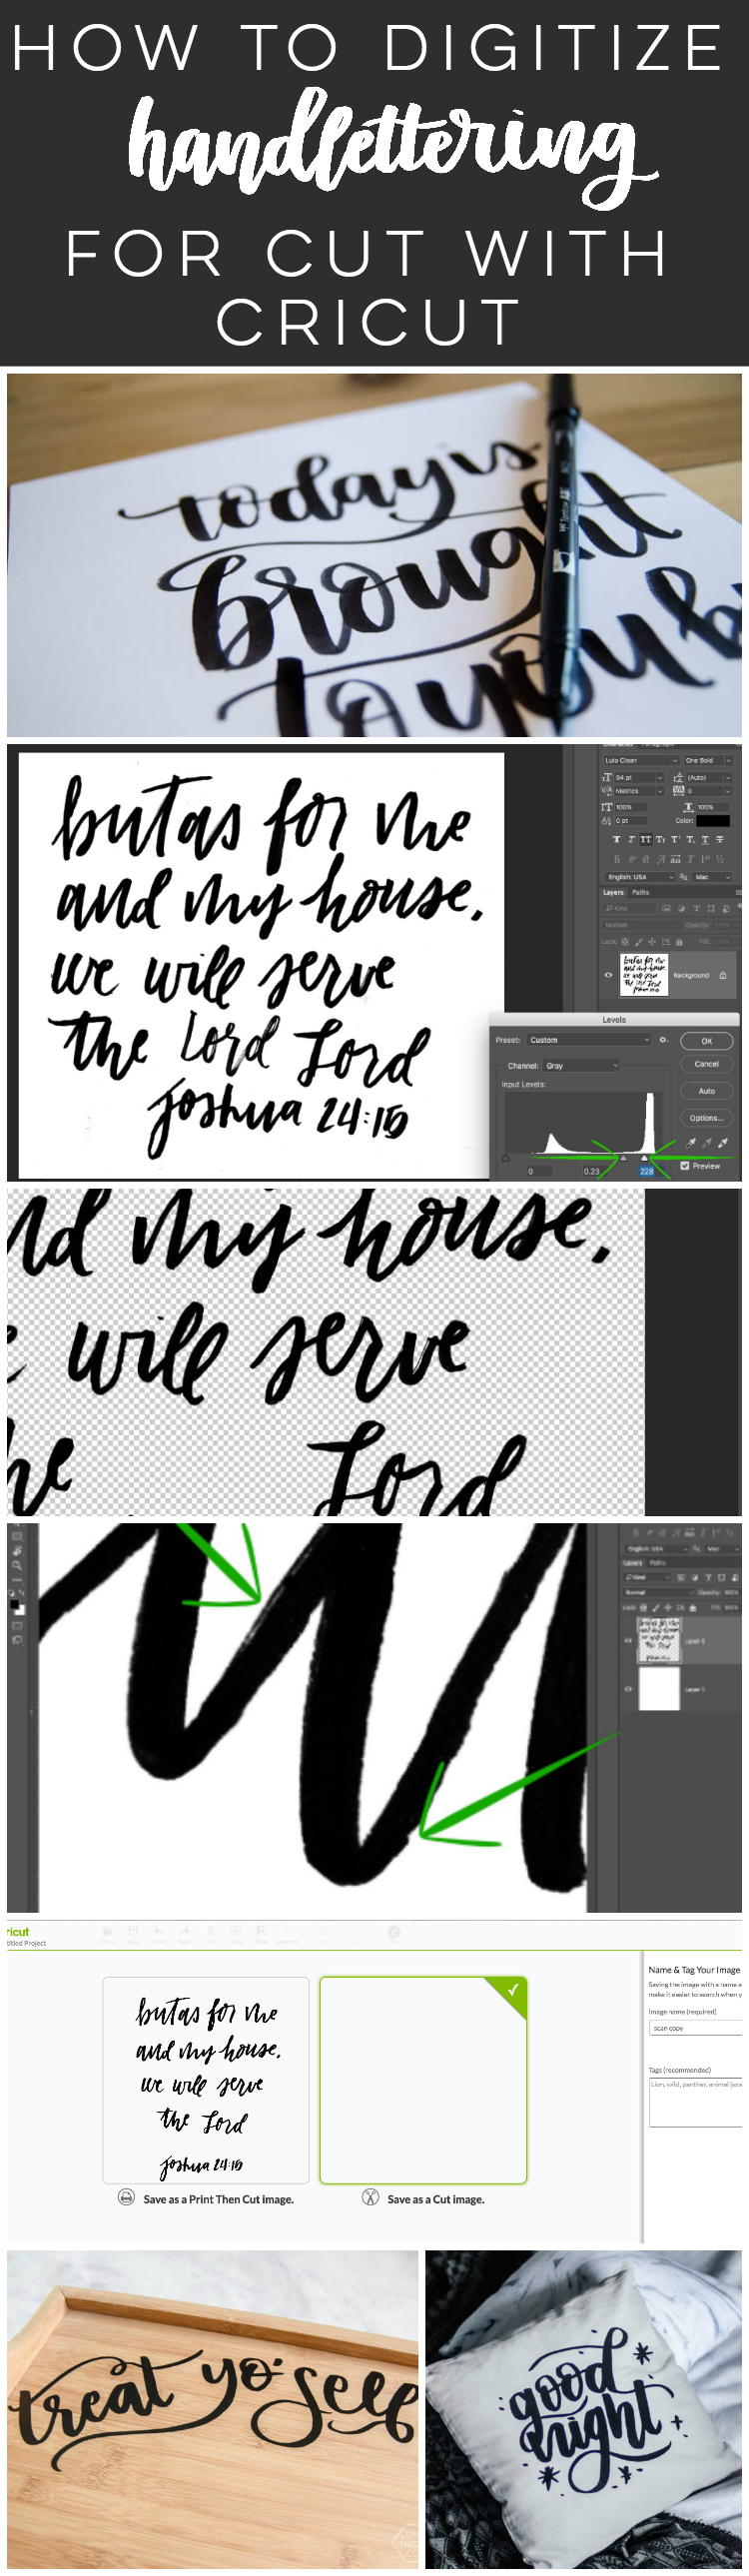 how to digitize hand lettering for cut with cricut- such a great tutorial!